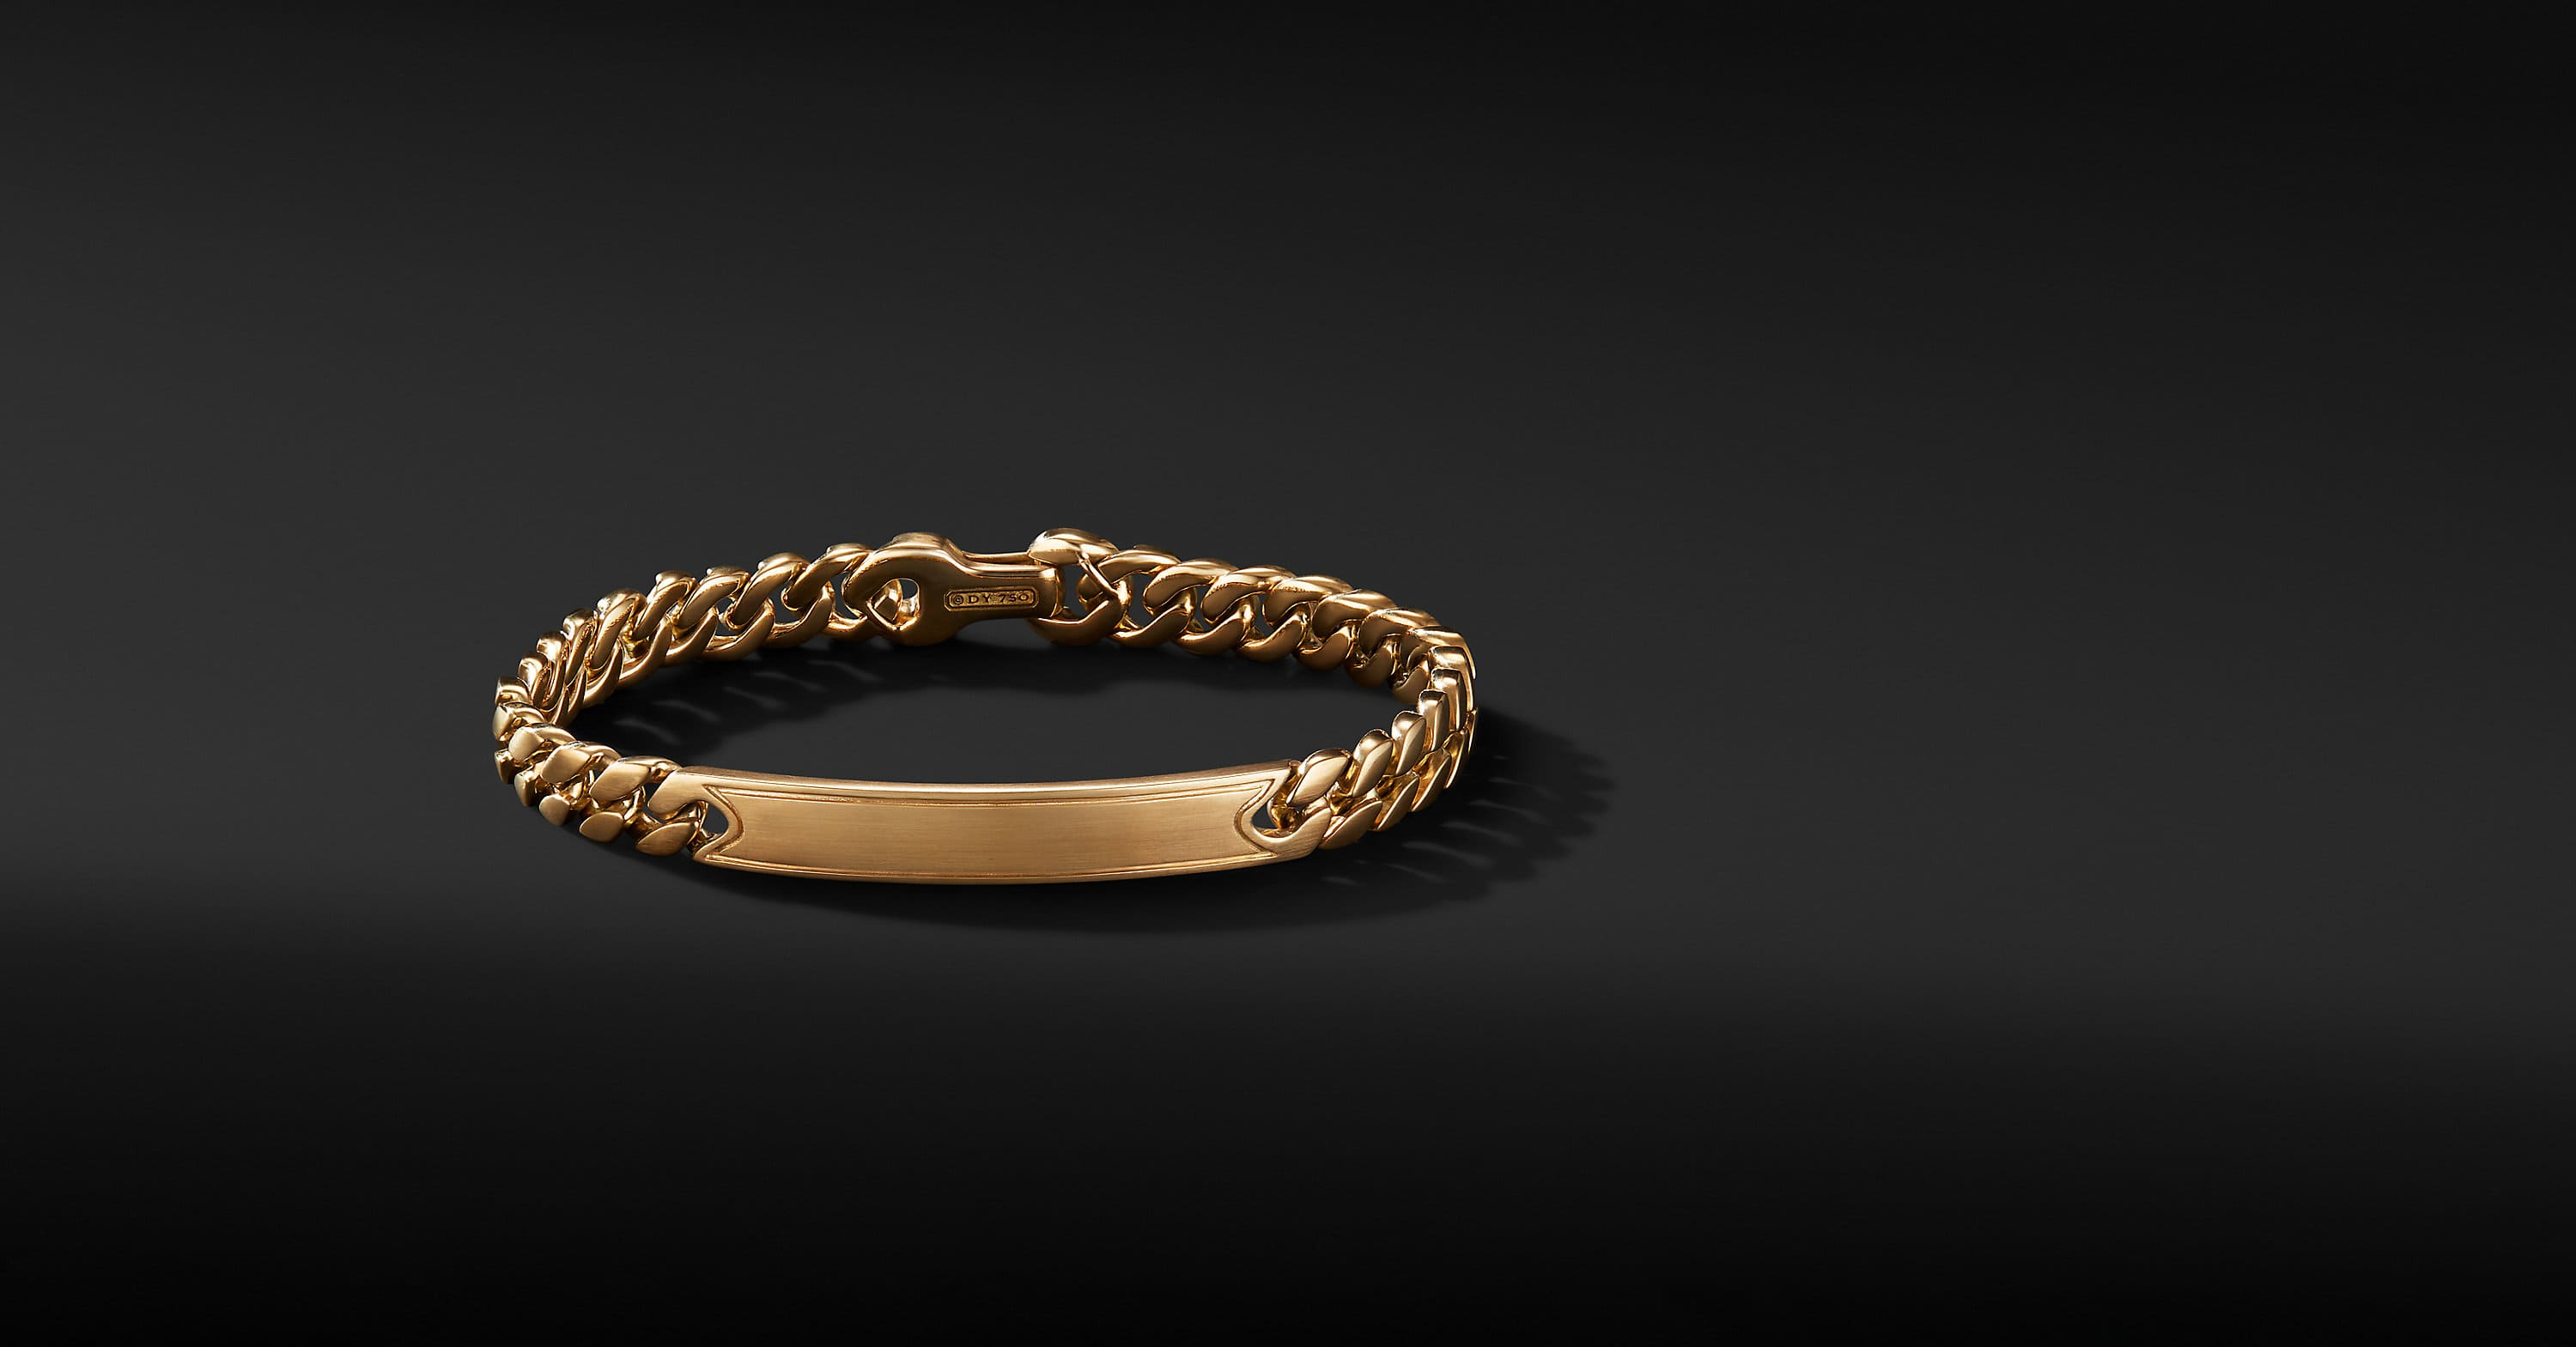 Micro Curb Chain ID Bracelet in 18K Yellow Gold, 8mm